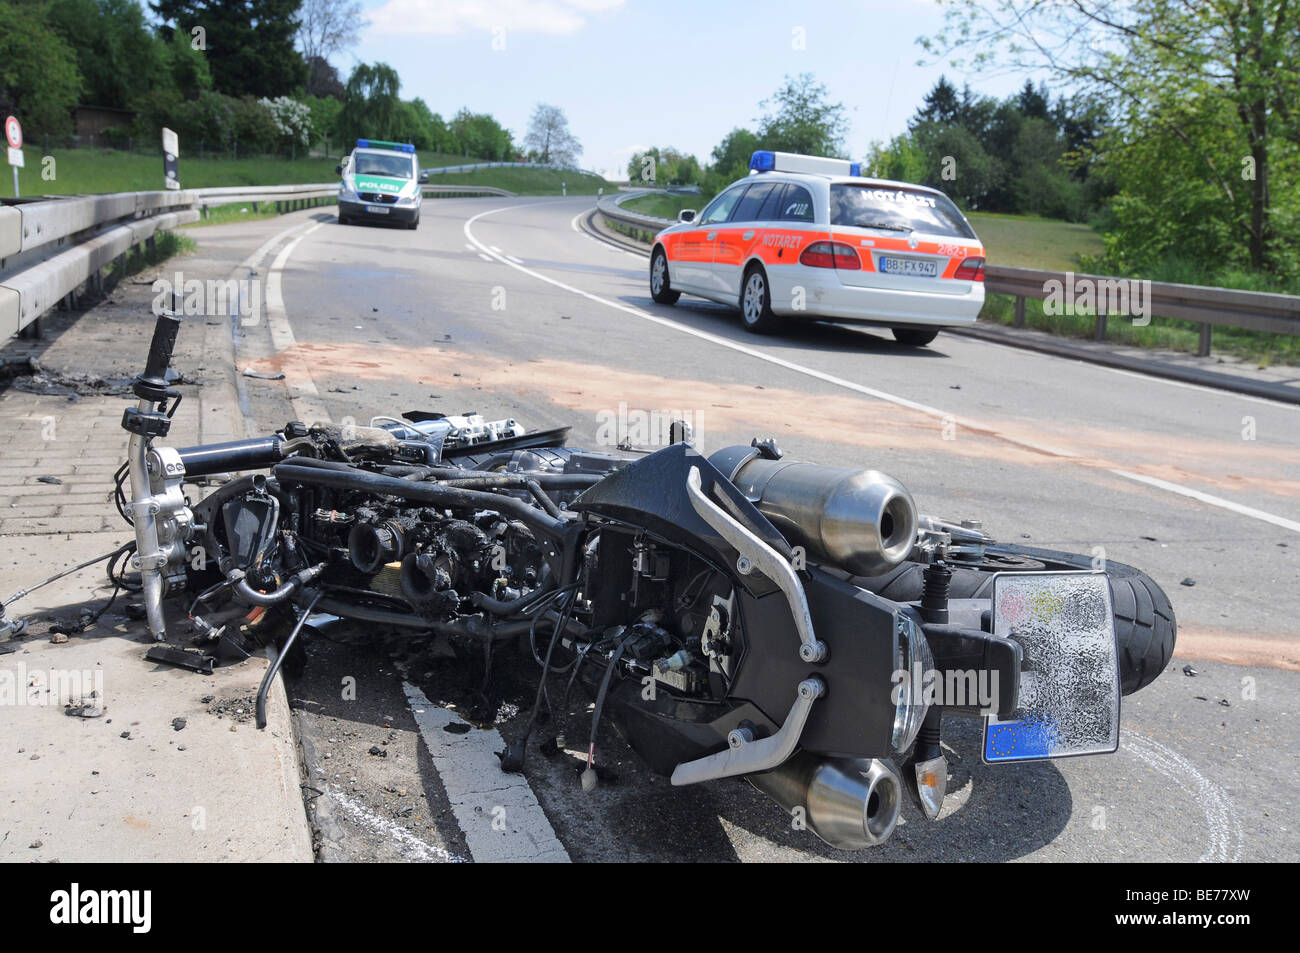 Motorcycle gutted by fire, fatal motorcycle accident on the K 1059 Hoefingen between Hoefingen and Gebersheim, the - Stock Image